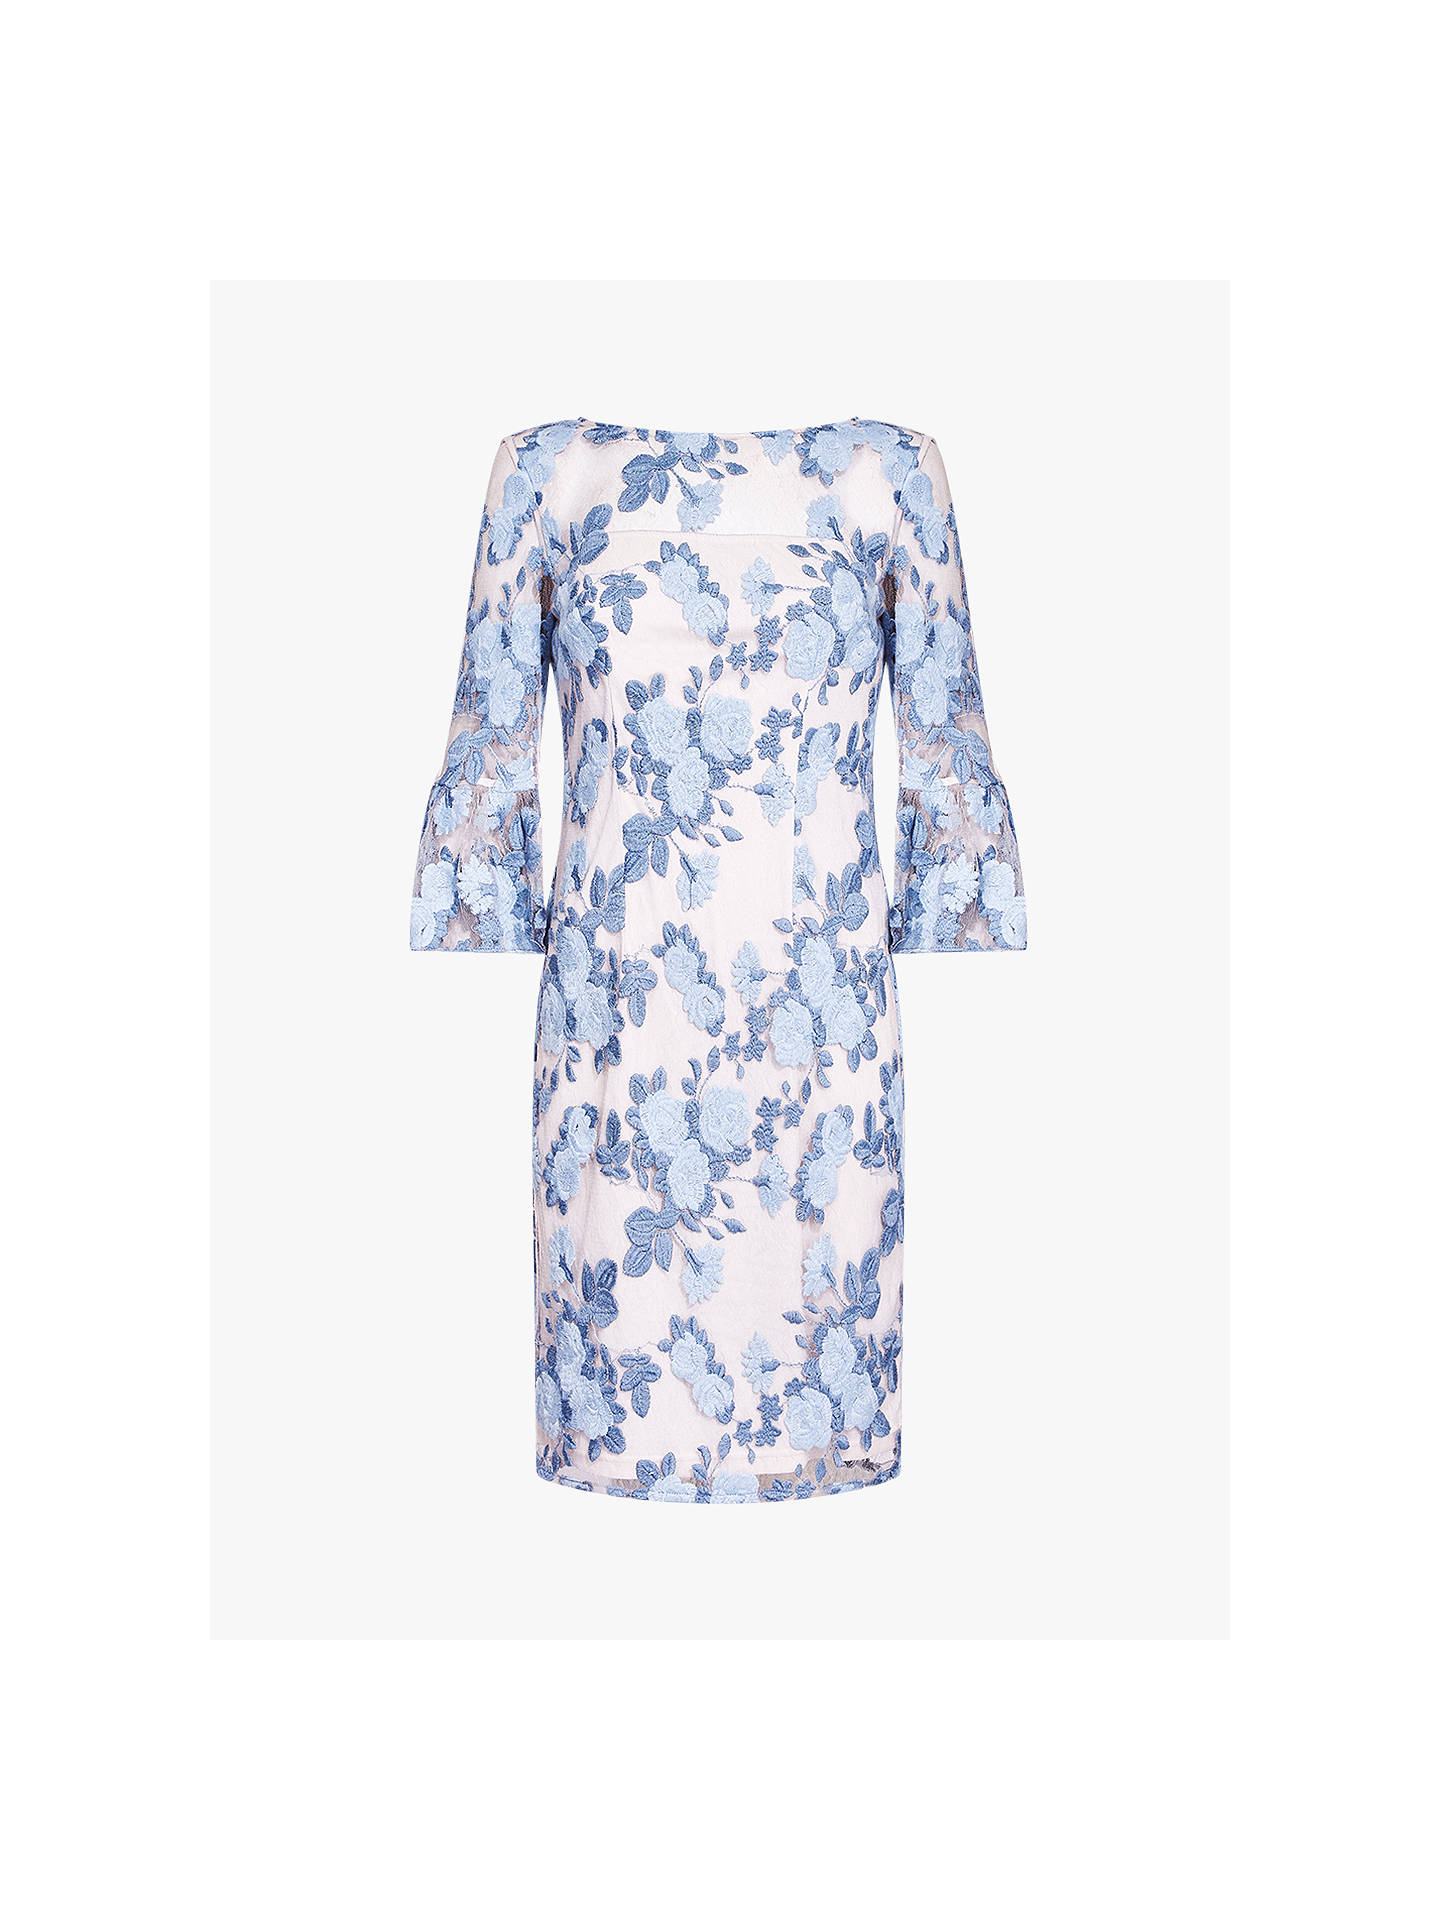 BuyAdrianna Papell Floral Embroidered Dress, Blue Mist, 16 Online at johnlewis.com